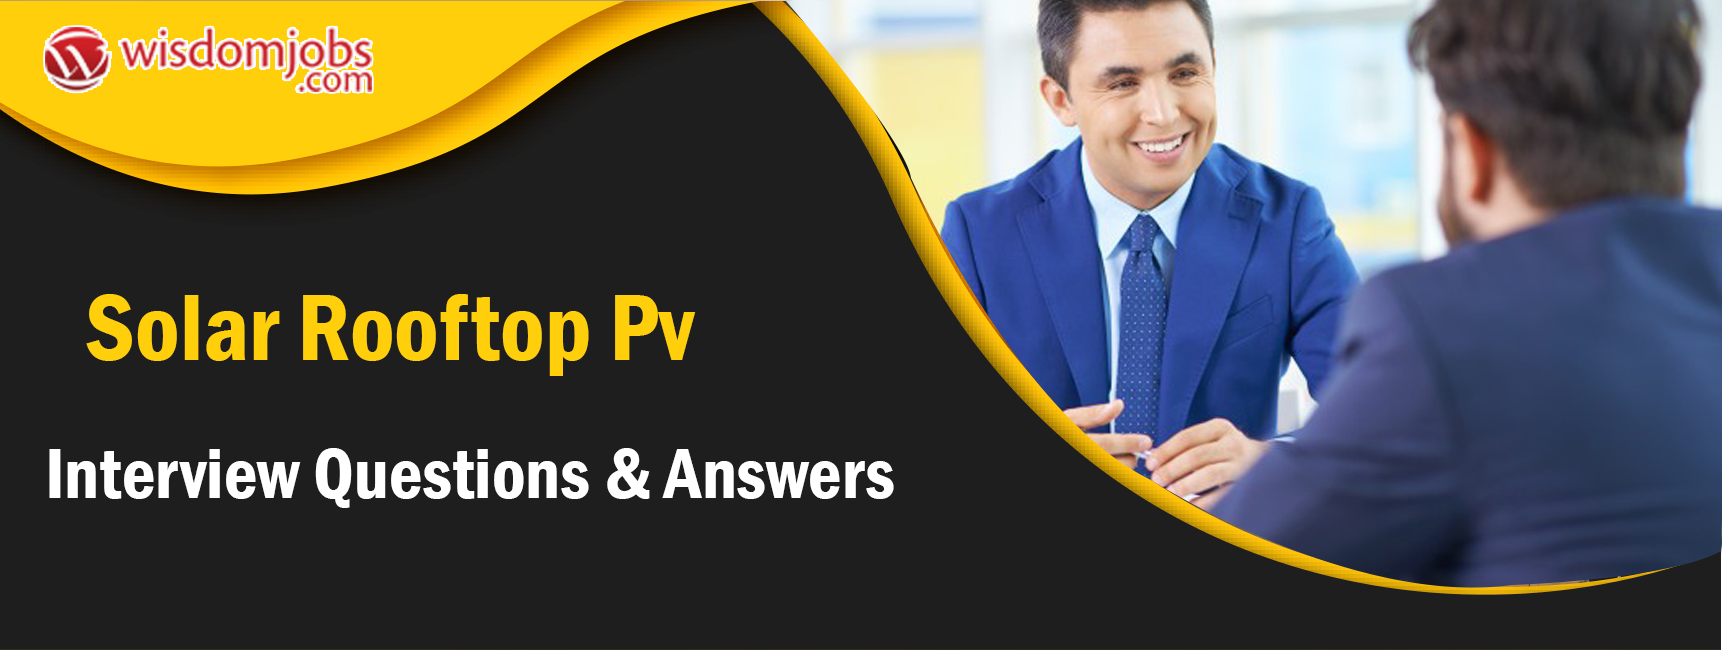 Solar Rooftop Pv Interview Questions & Answers